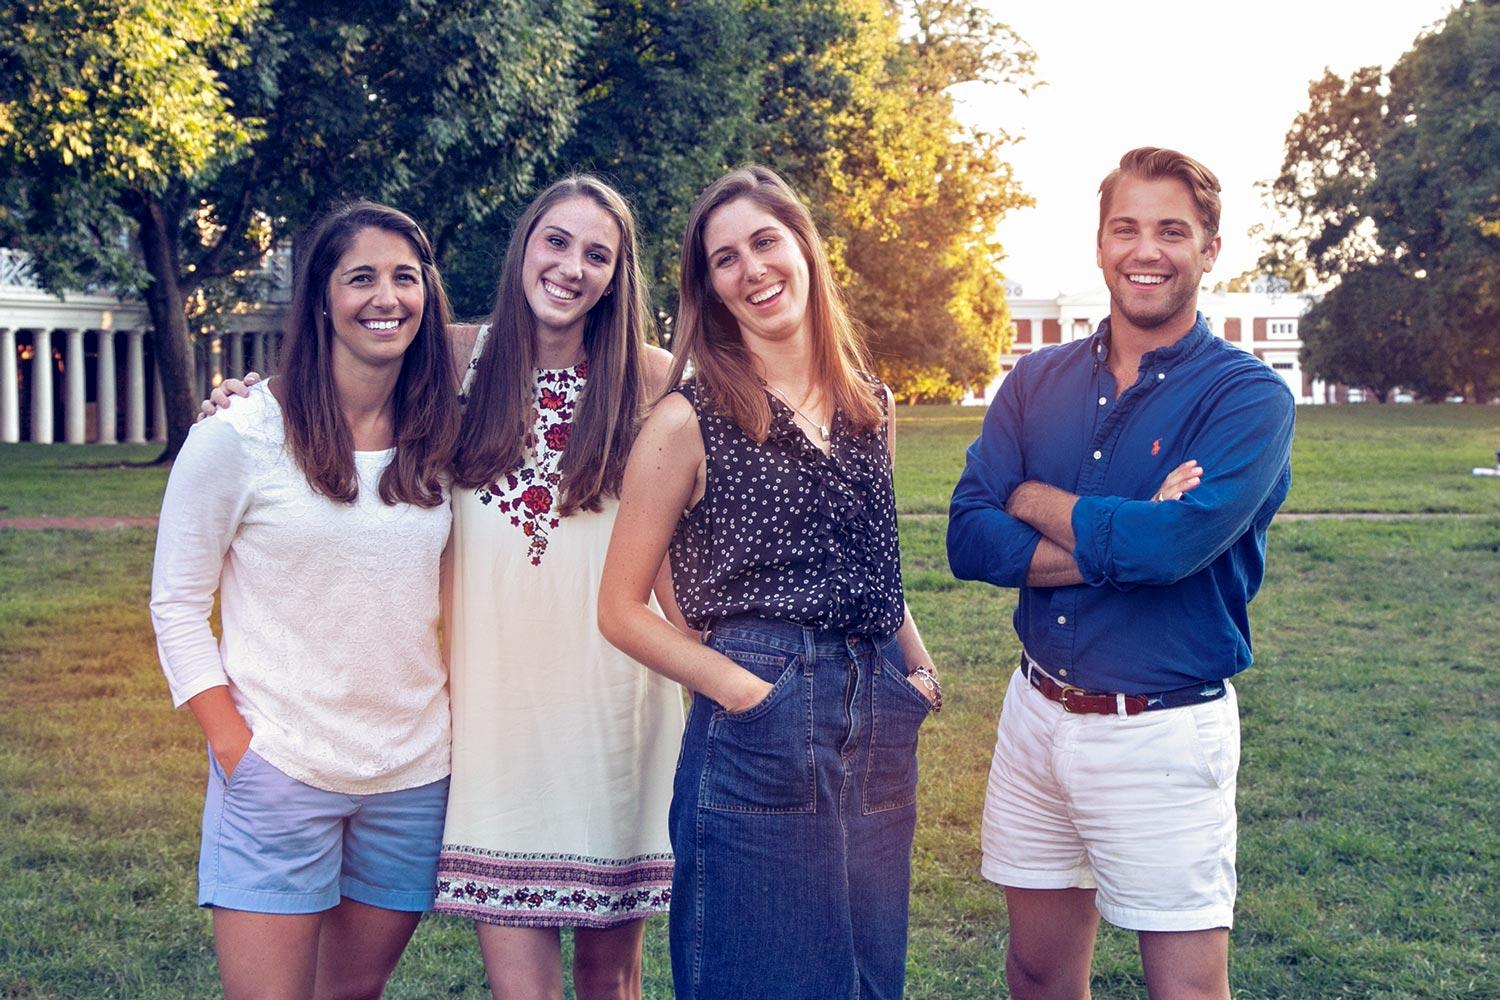 7b2f9d1ab5af5 All in the Family  Six Generations of  Hoos Find Their Niches on ...